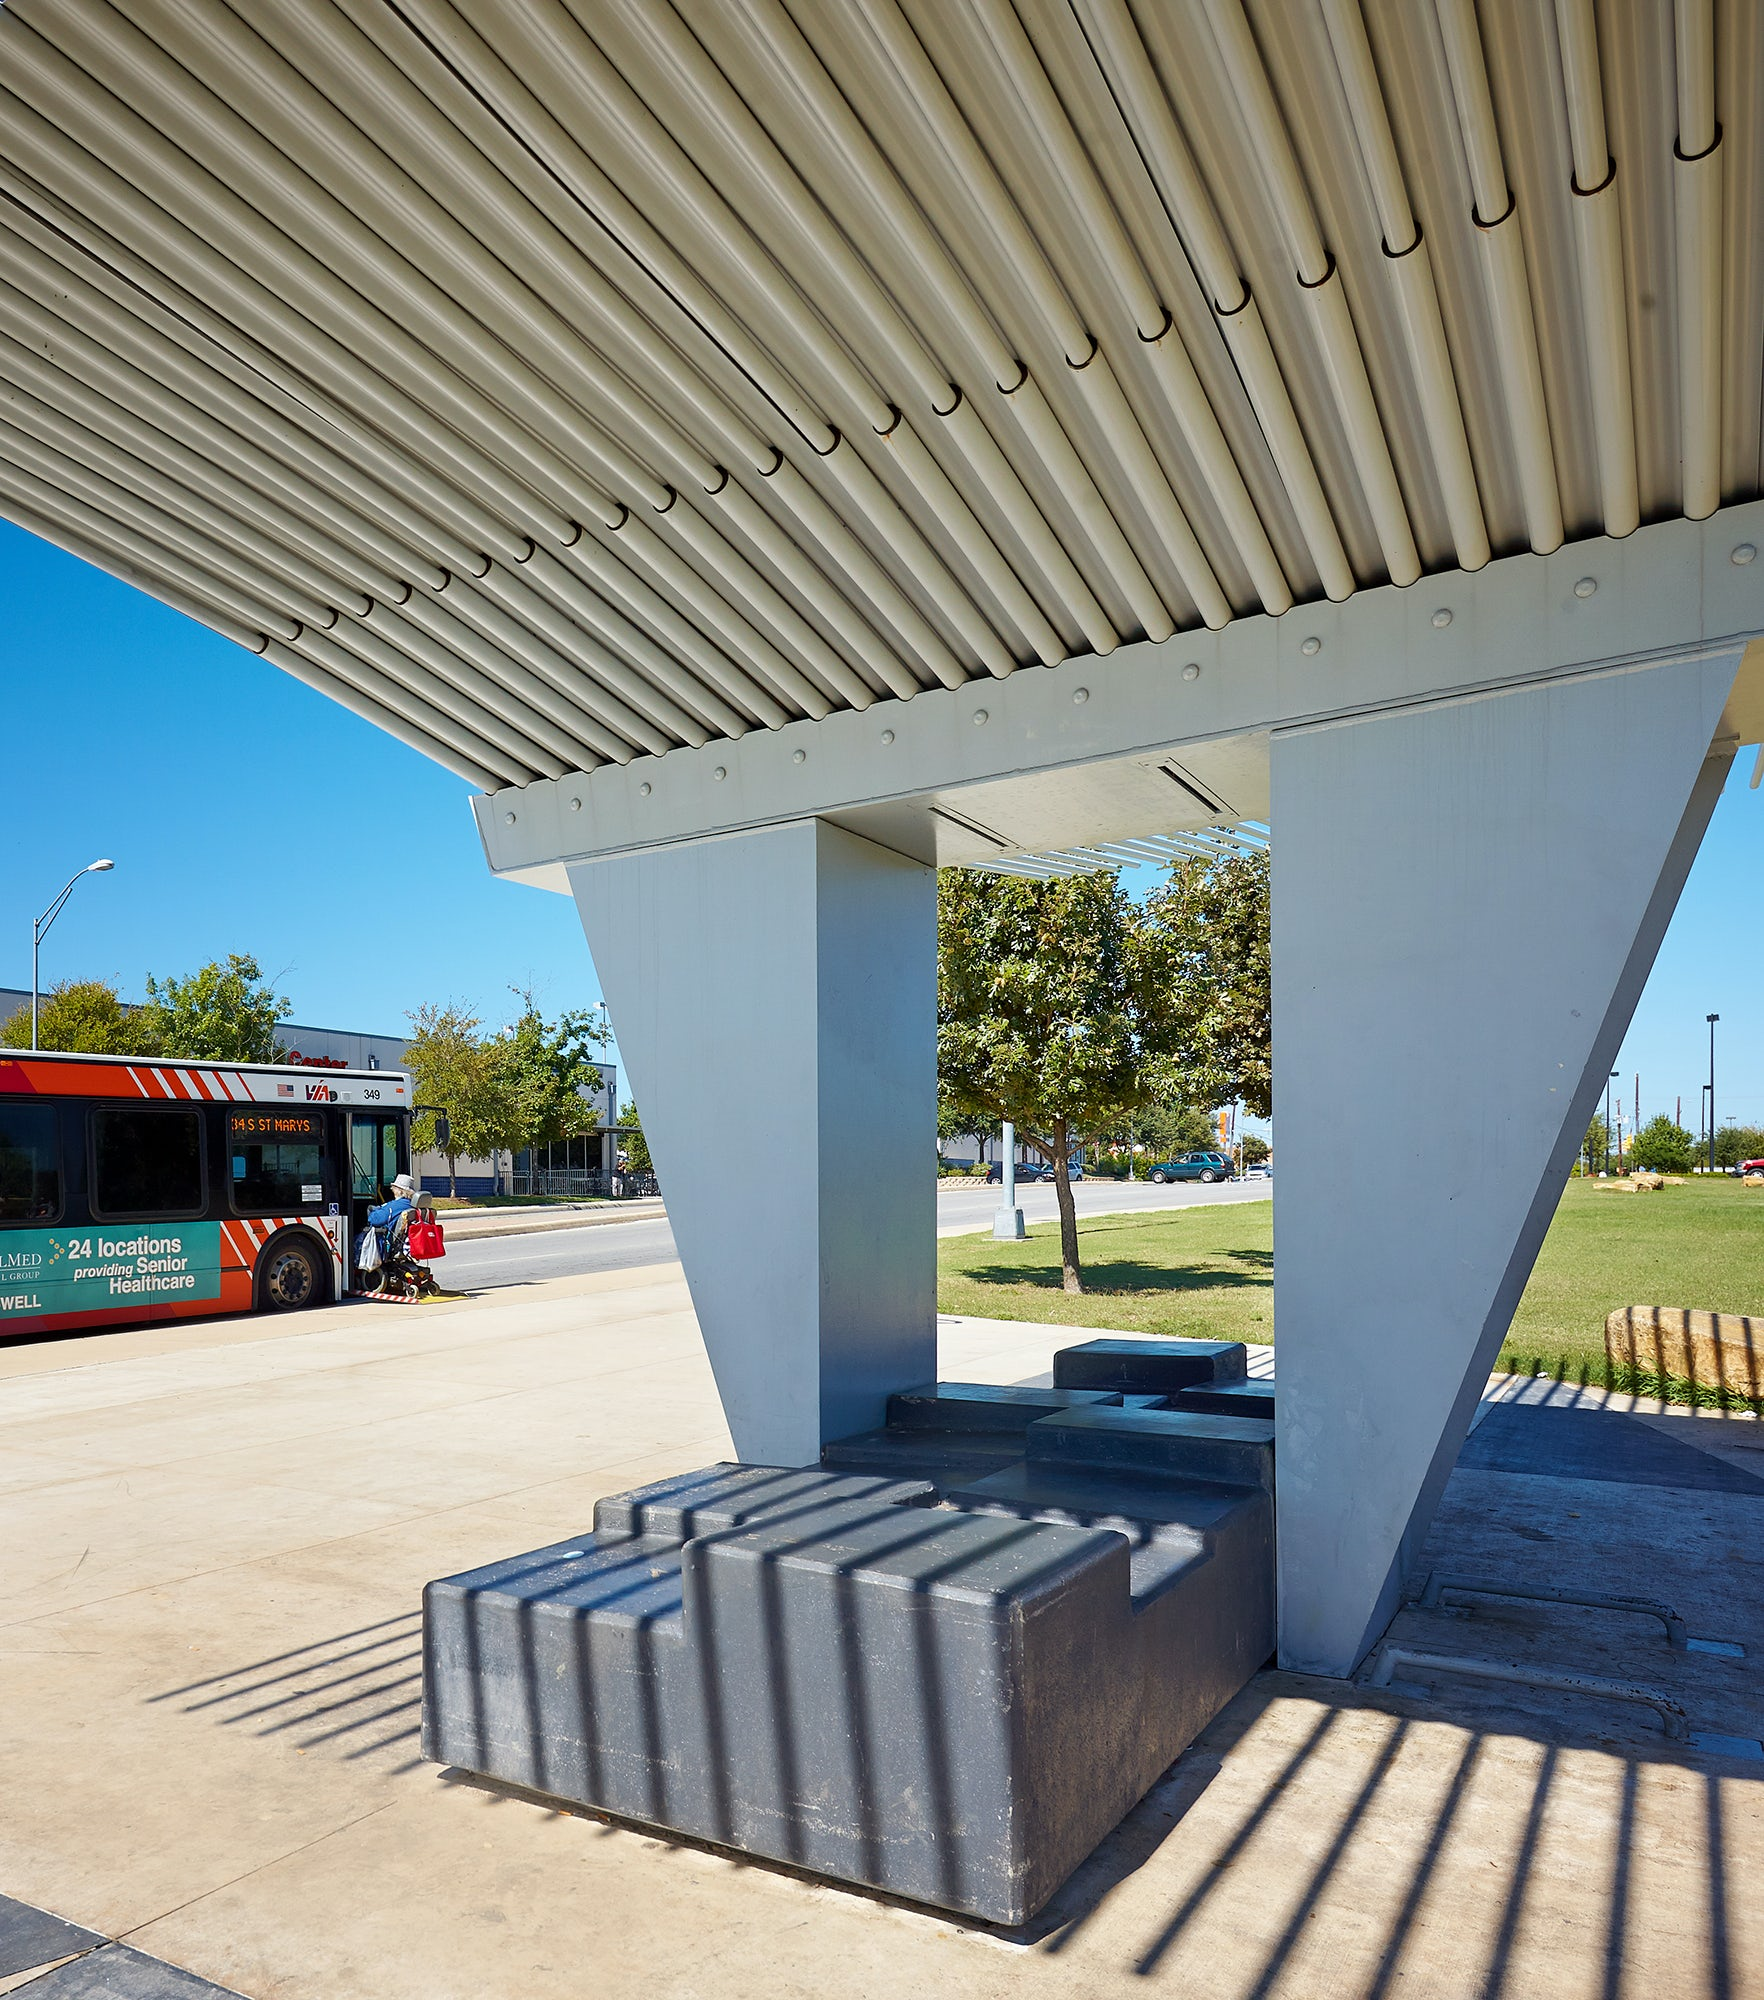 Via Bus Stop Architizer